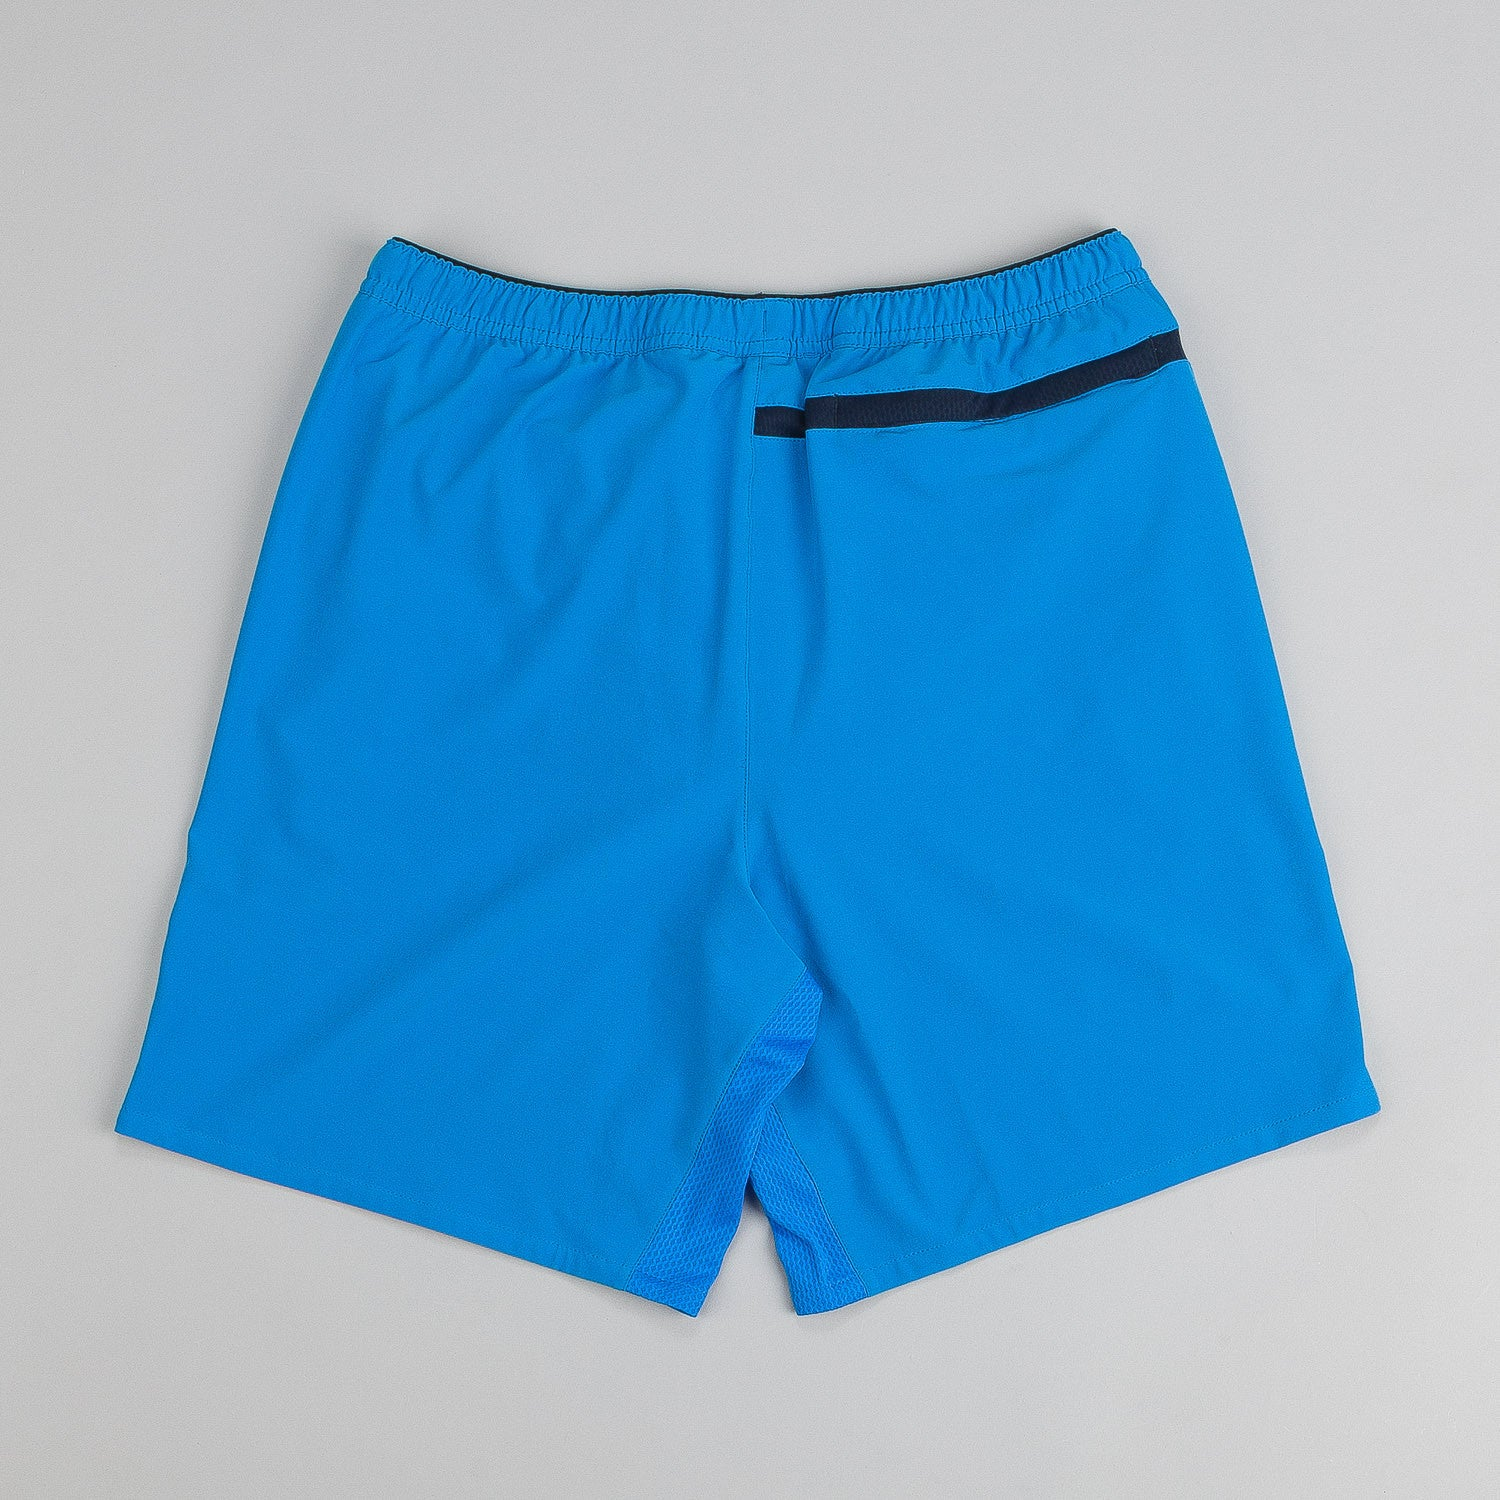 Patagonia Nine Trails Shorts - Andes Blue